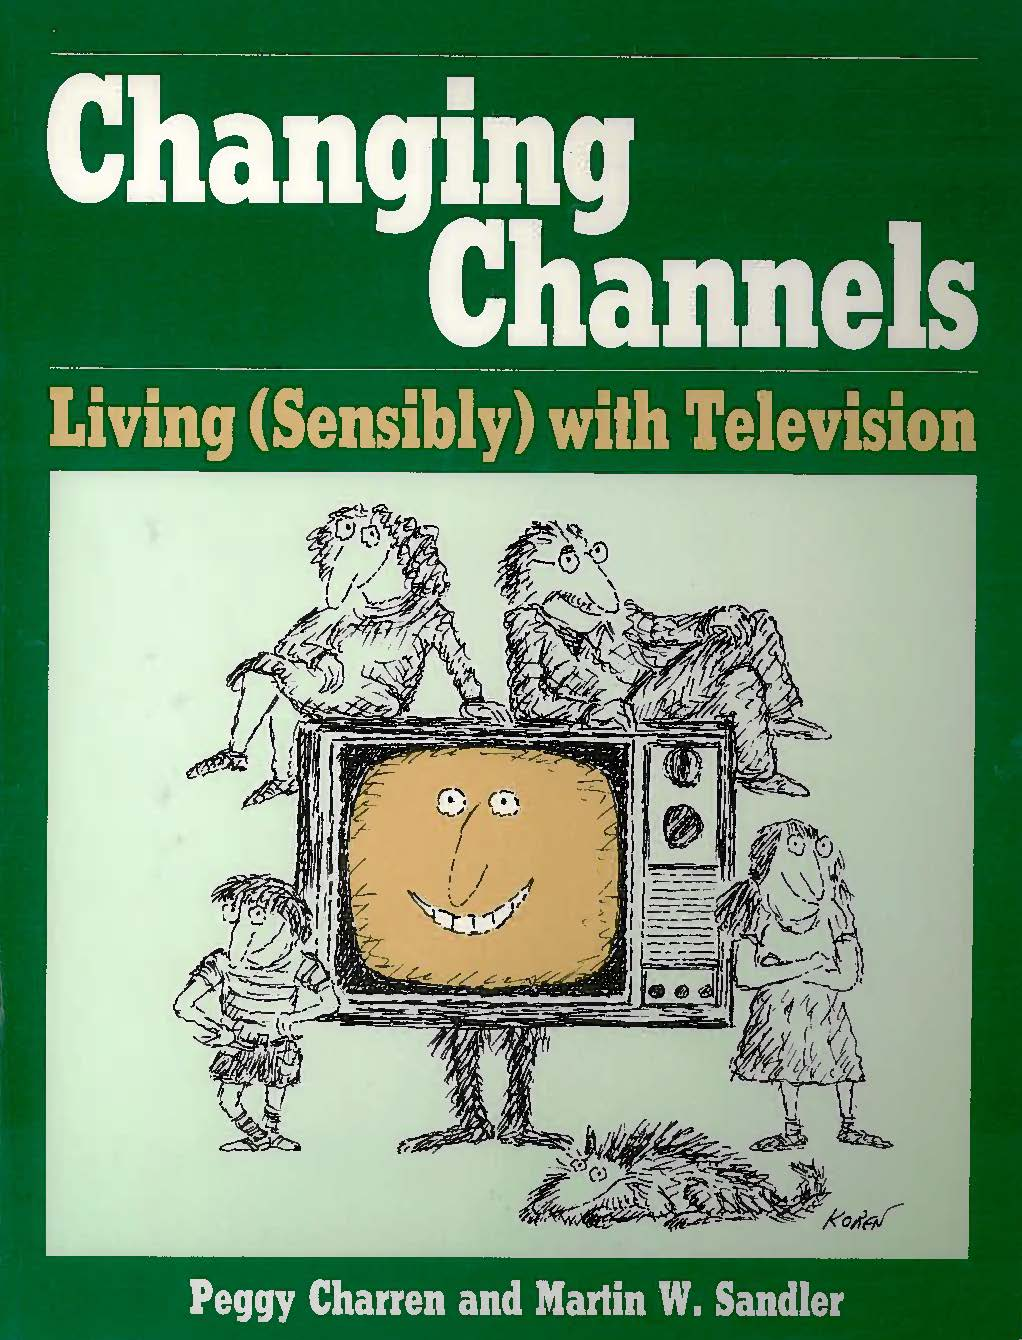 Cover image of the book, Changing Channels.